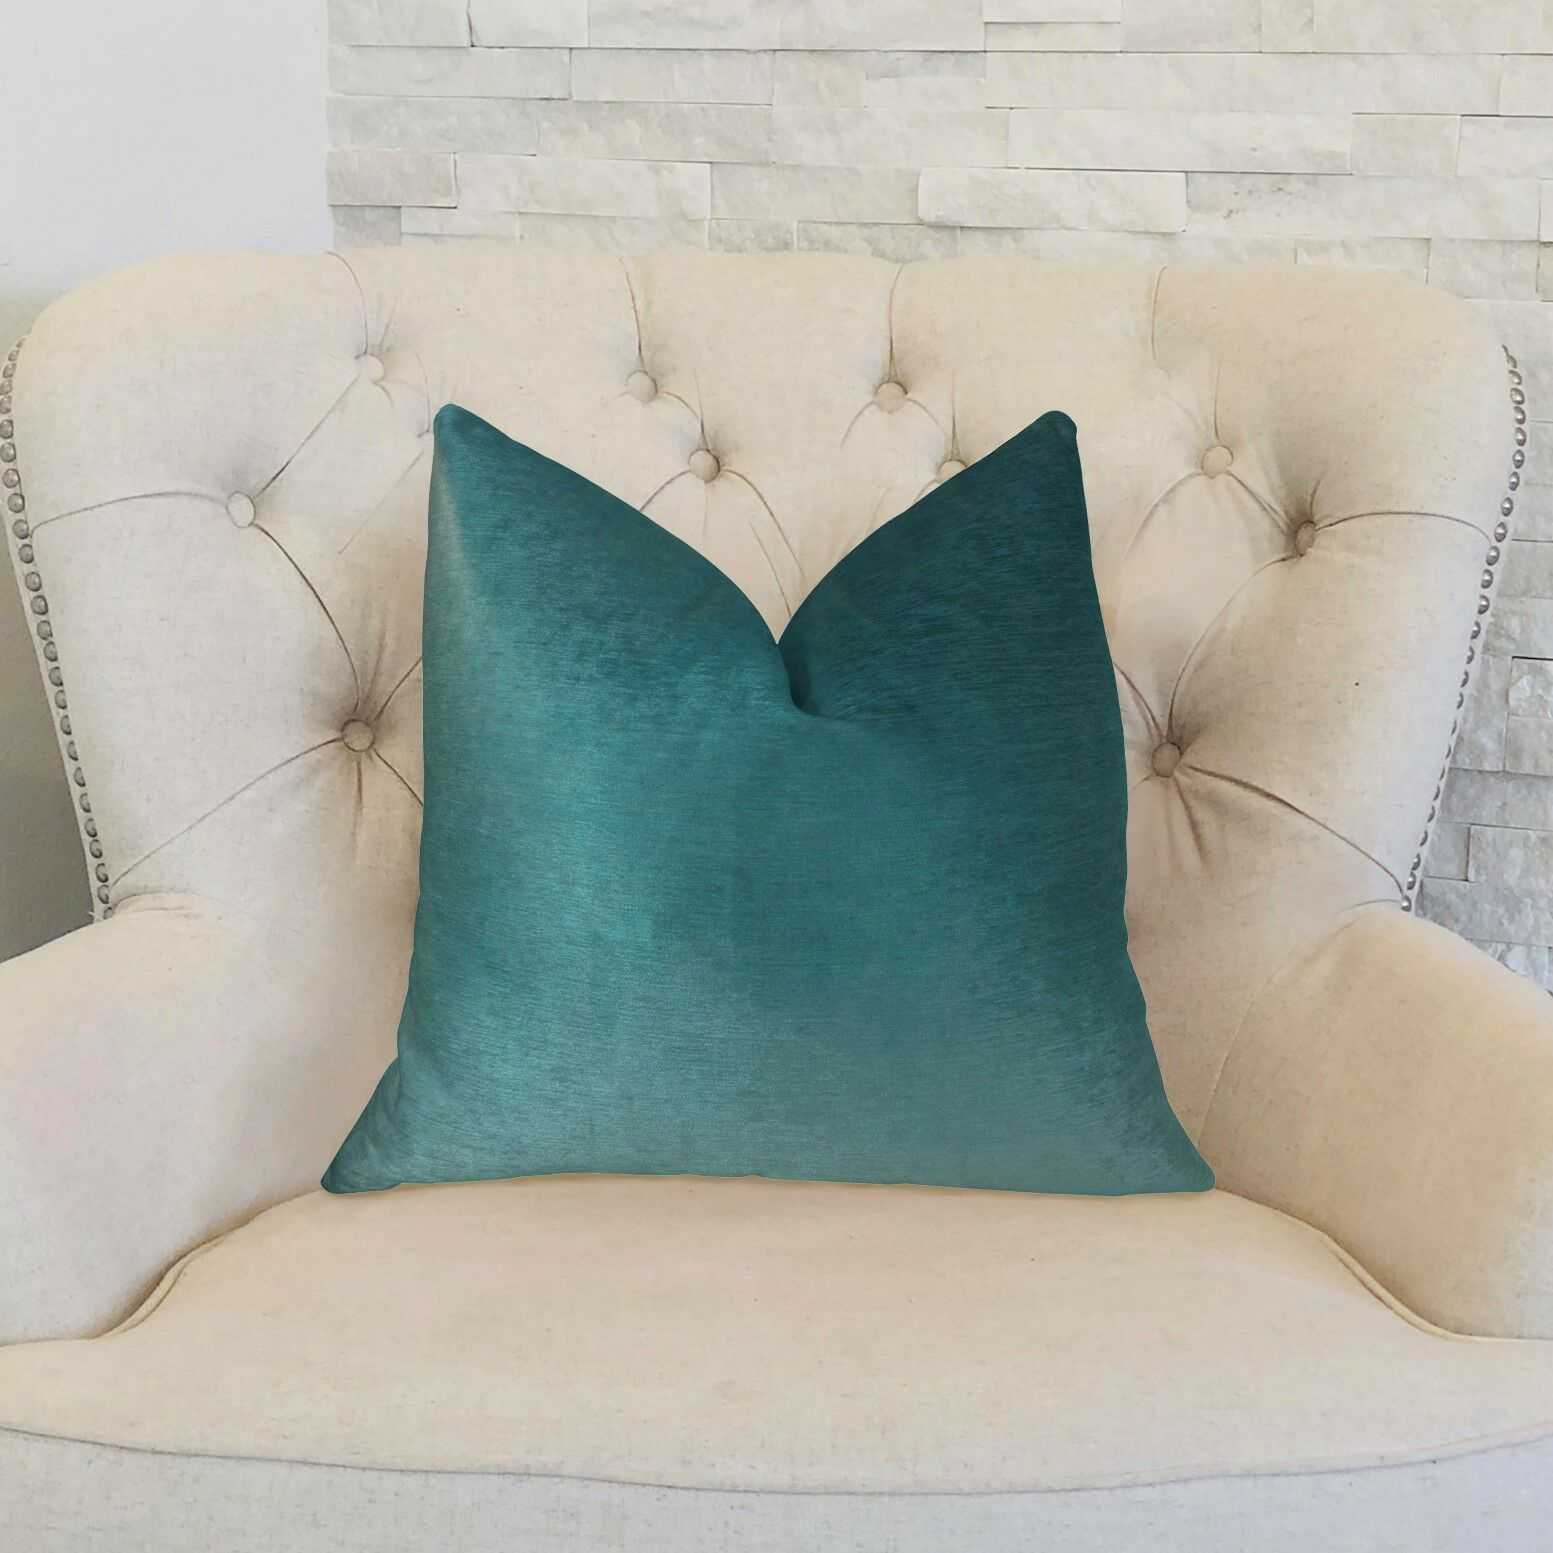 Loken Handmade Cotton Luxury Pillow Size: 24